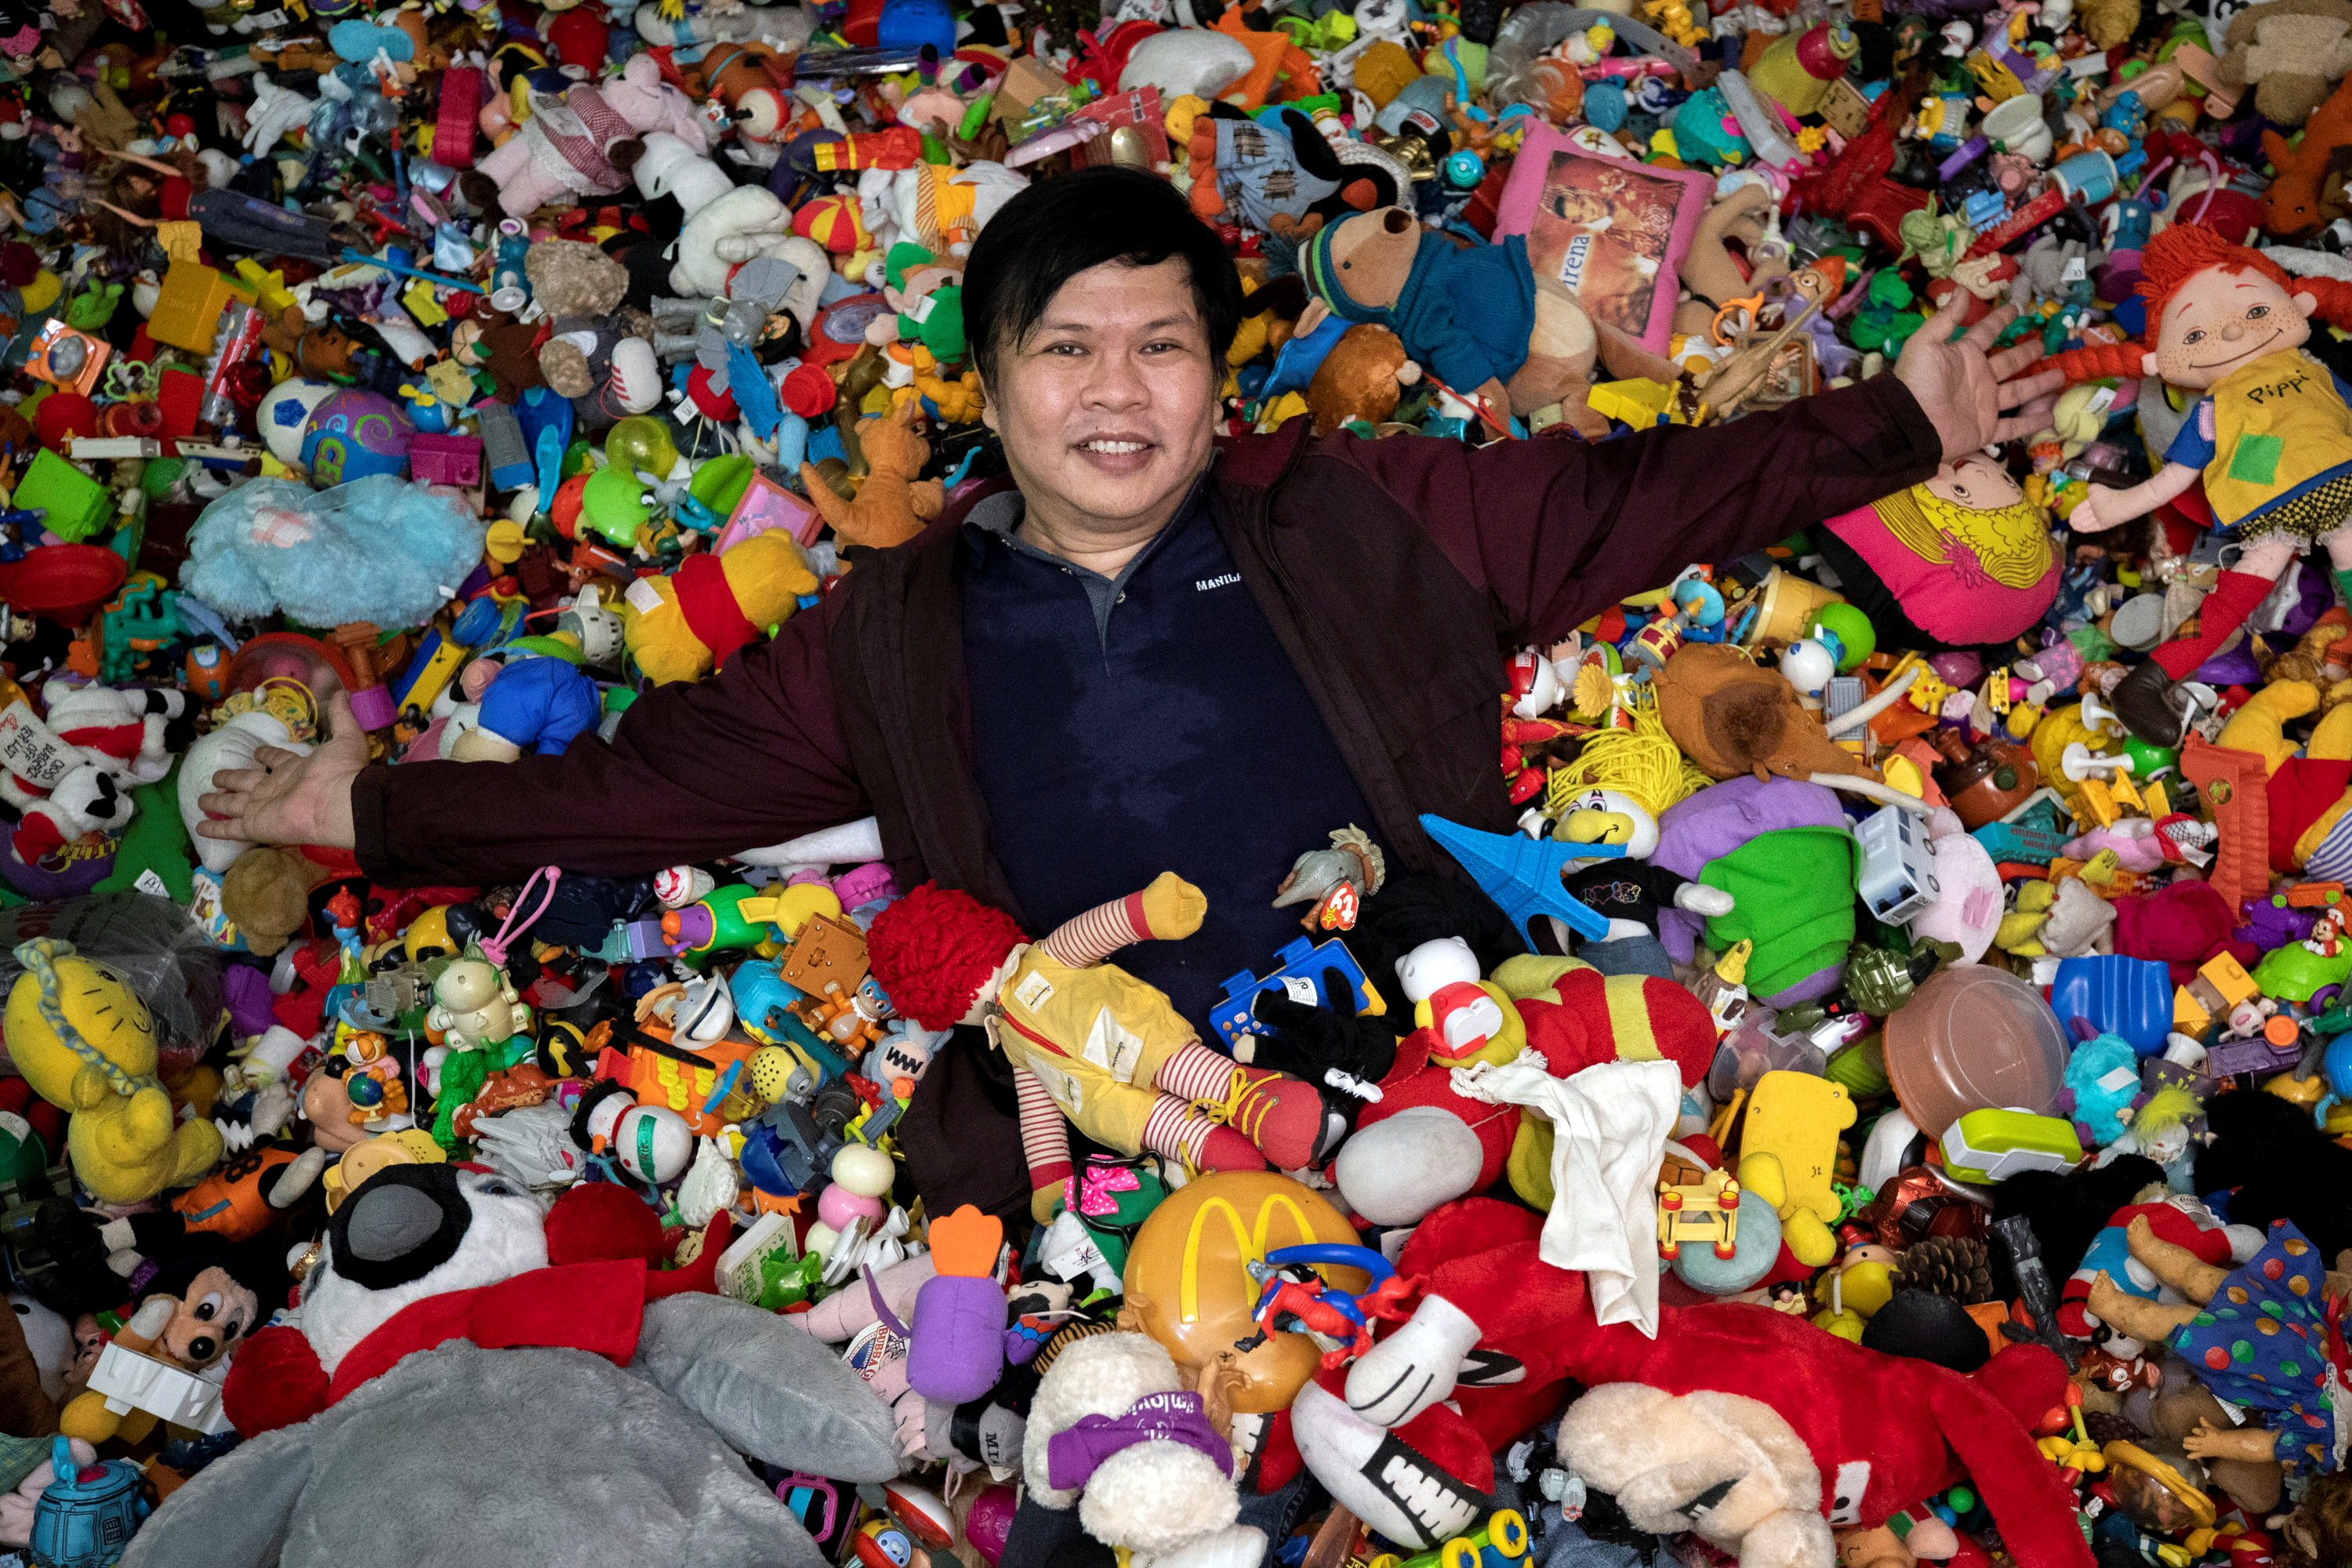 Percival Lugue, who has the Guinness world record for the largest fast-food toy collection, poses with his toy collection in his home in Apalit, Pampanga province, Philippines, April 20, 2021. REUTERS/Eloisa Lopez